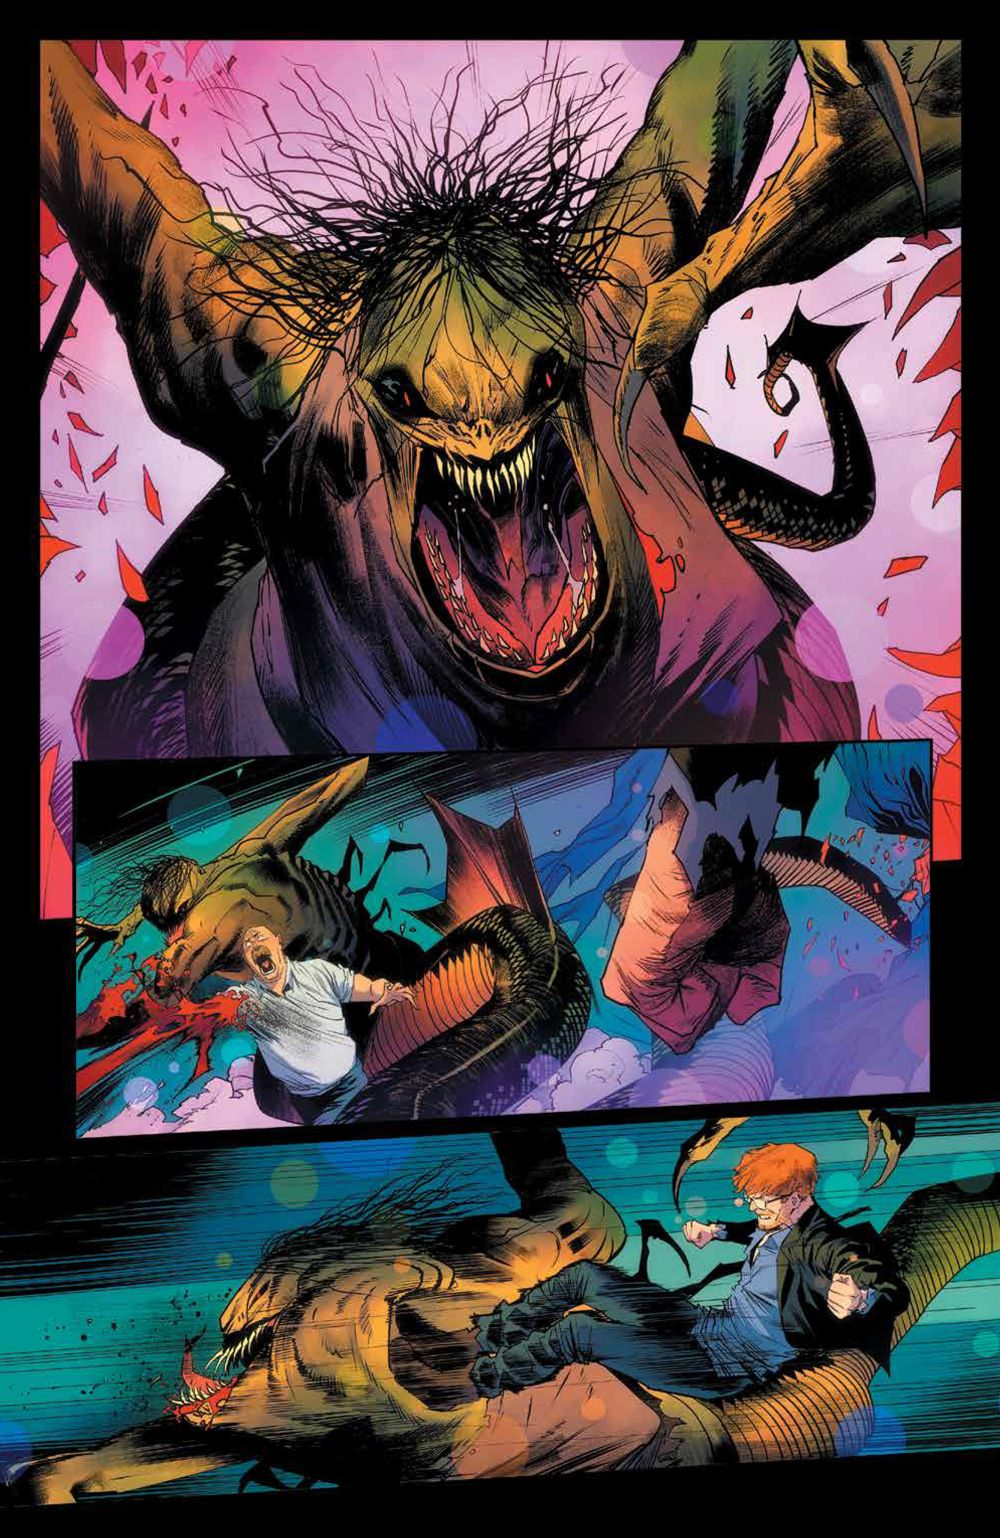 OnceFuture_012_PRESS_4-1 ComicList Previews: ONCE AND FUTURE #12